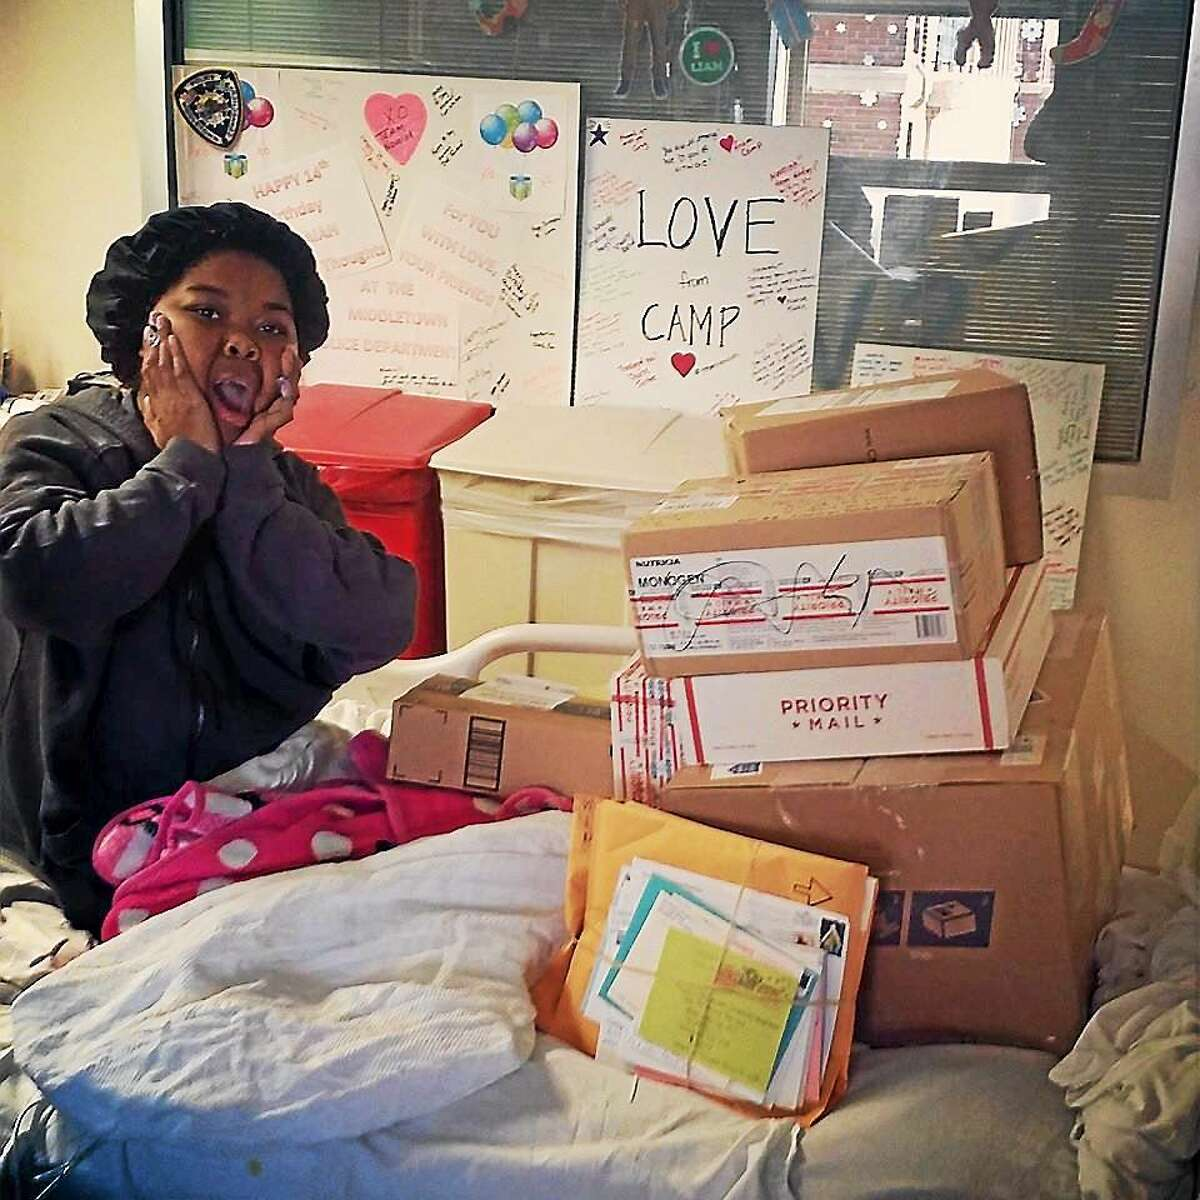 Navaiah Fulk, 14, of Middletown is overjoyed to receive care packages to boost her spirits after the teen underwent transplant surgery for the second time on Dec. 5.